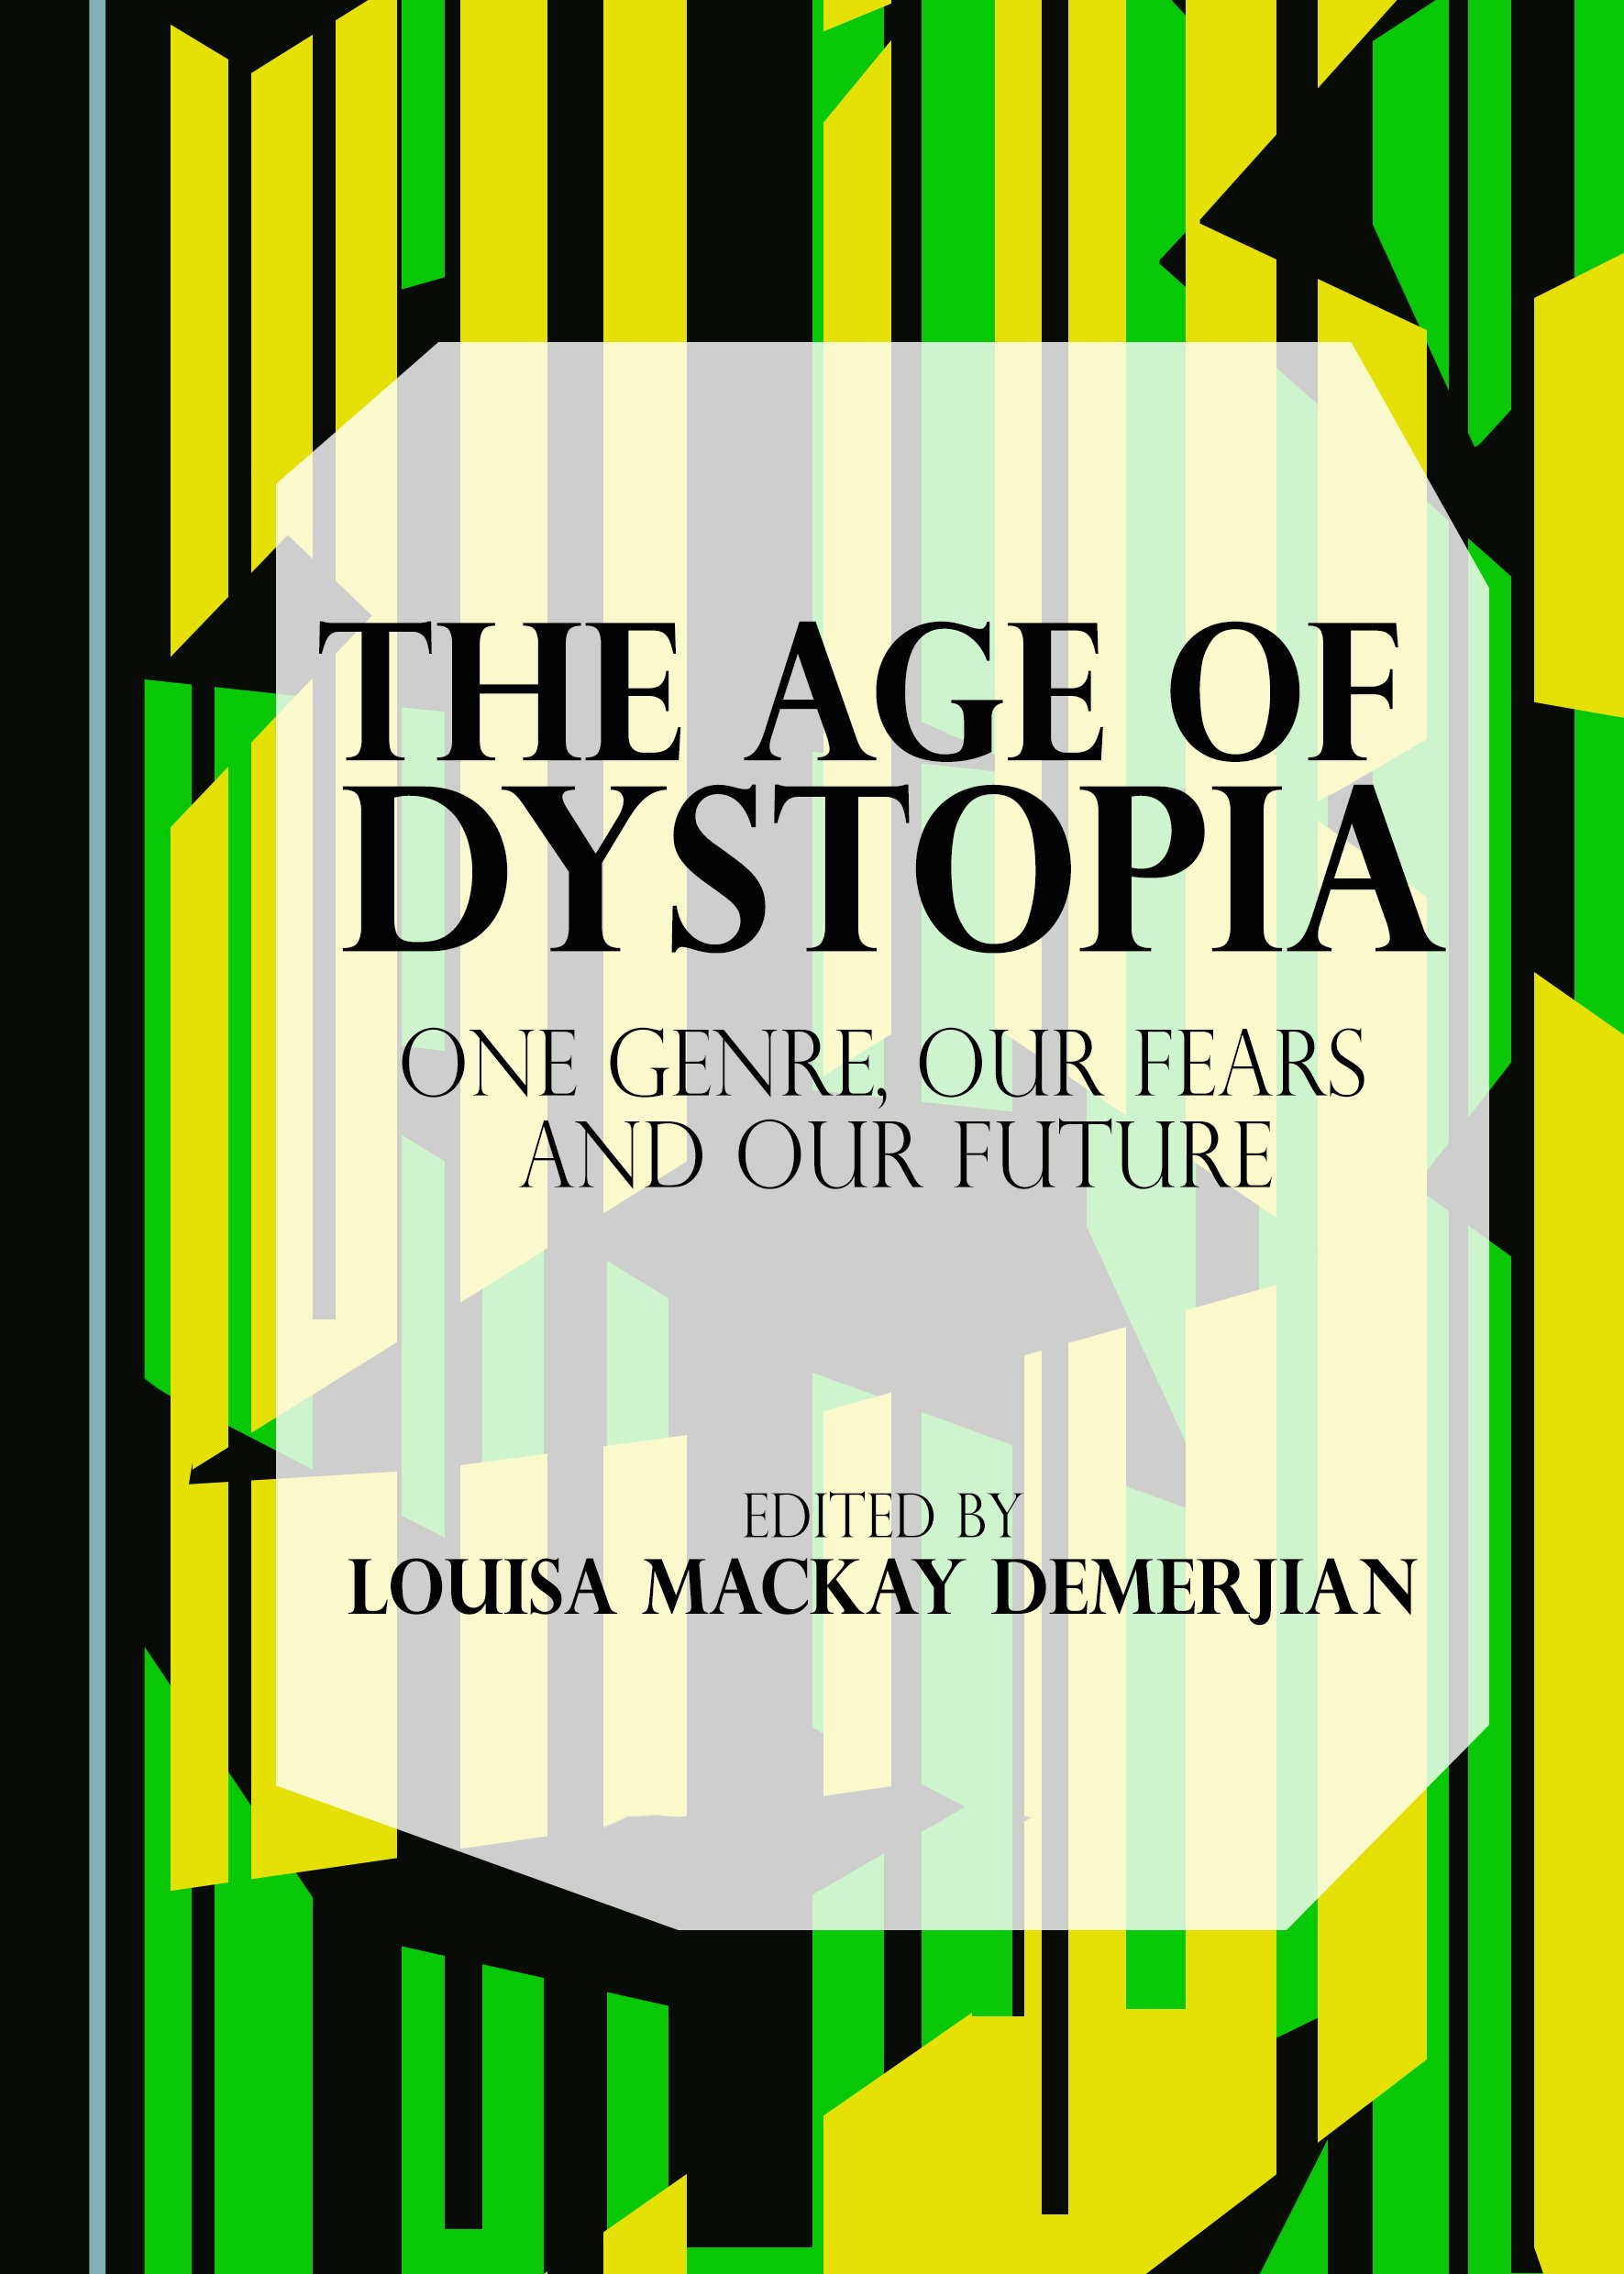 The Age of Dystopia: One Genre, Our Fears and Our Future